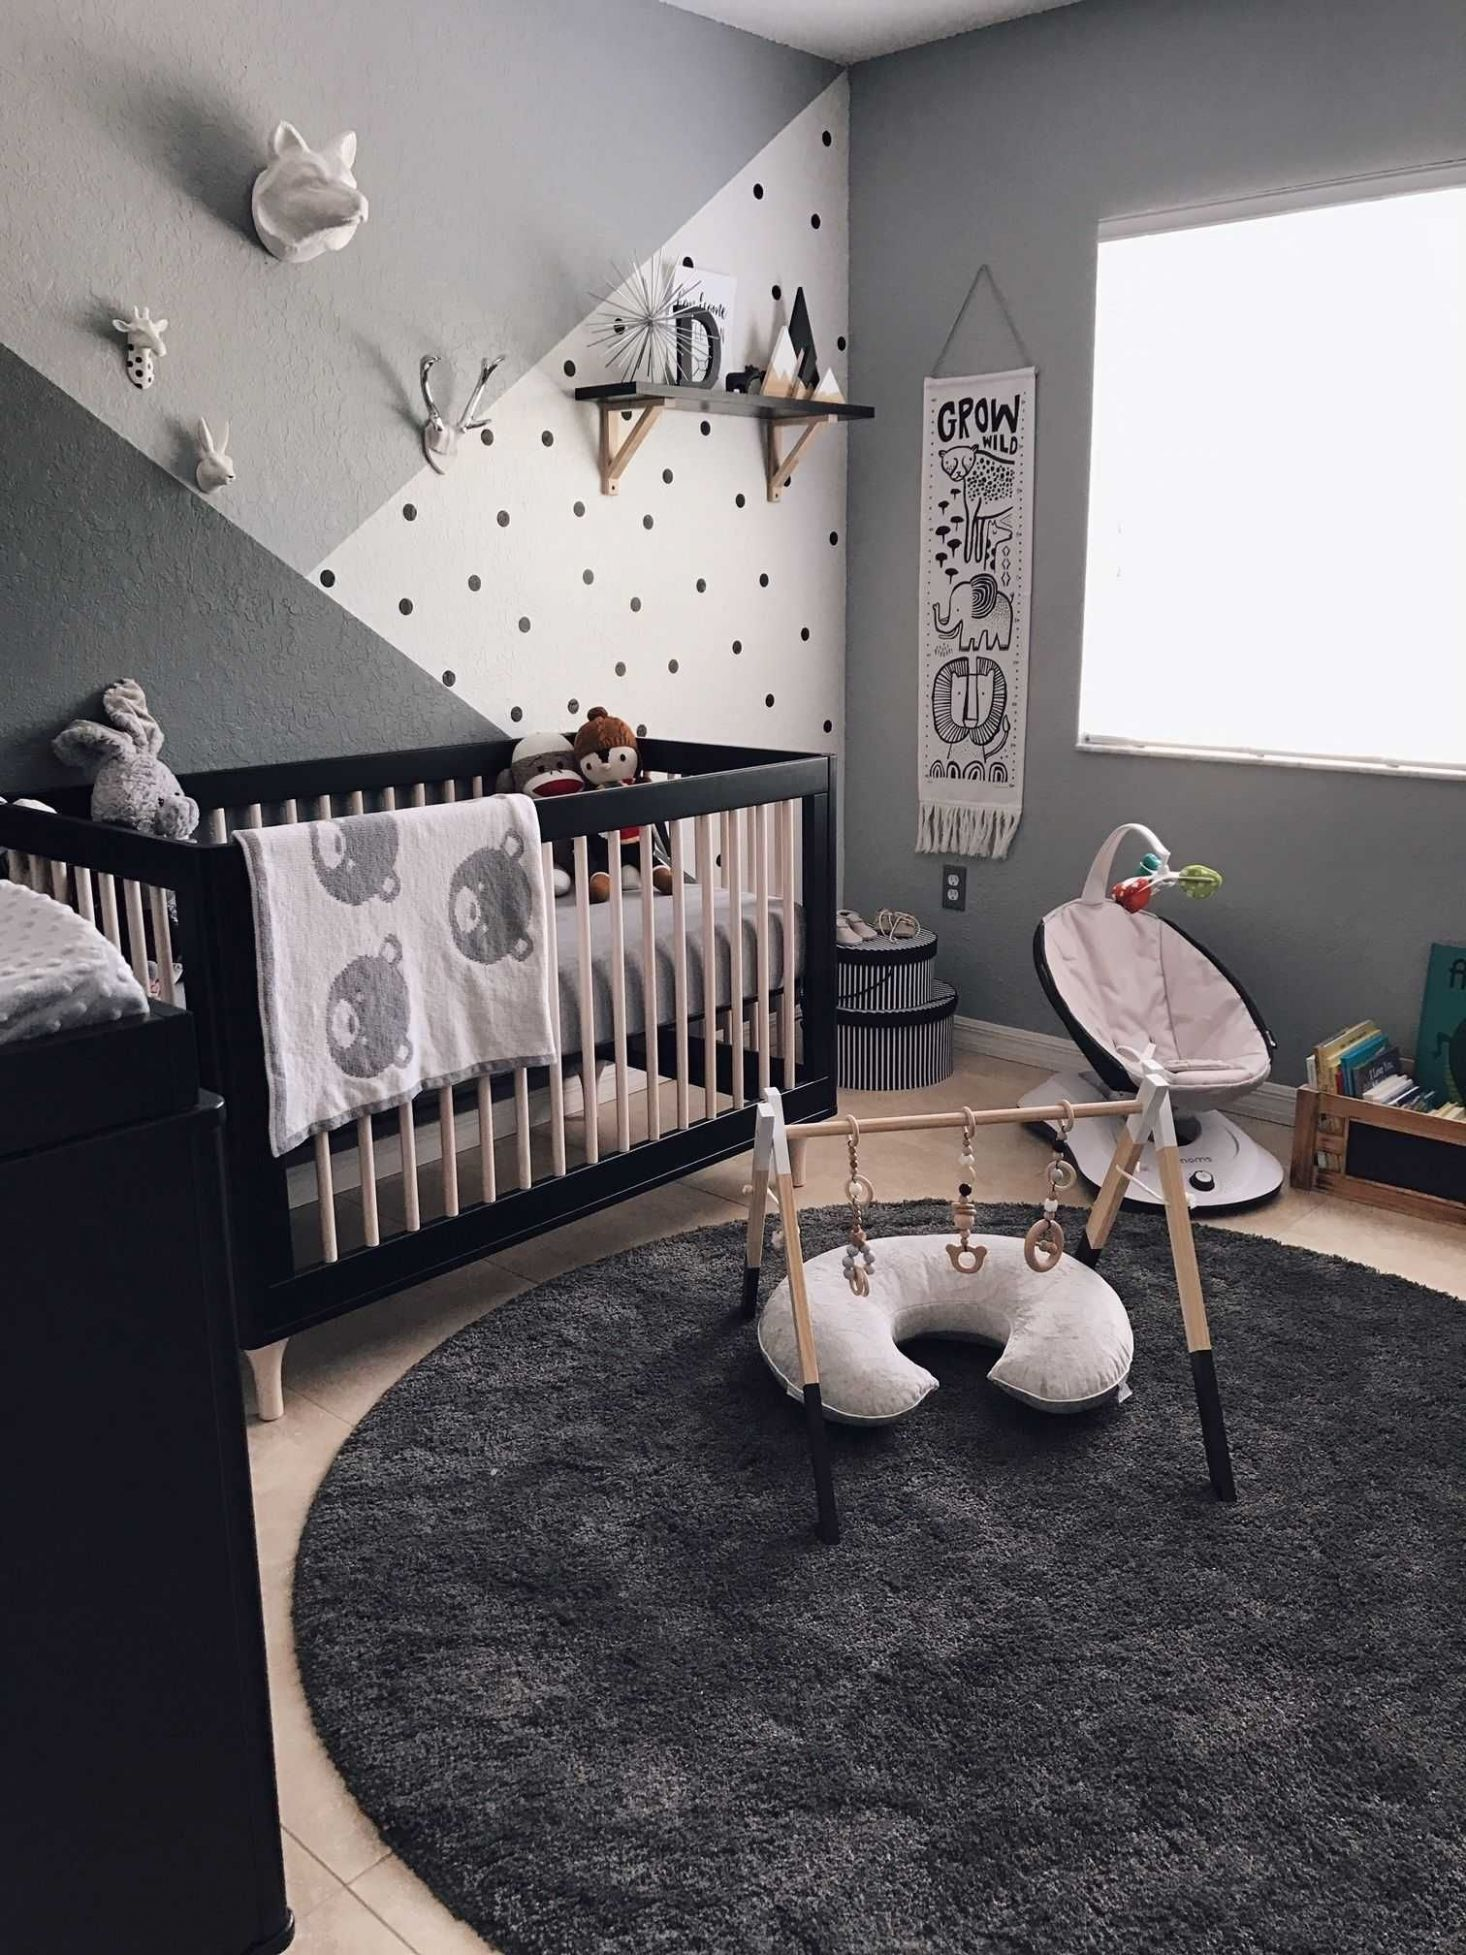 9+ Unordinary Nursery Room Ideas For Baby Boy - GAGOHOME